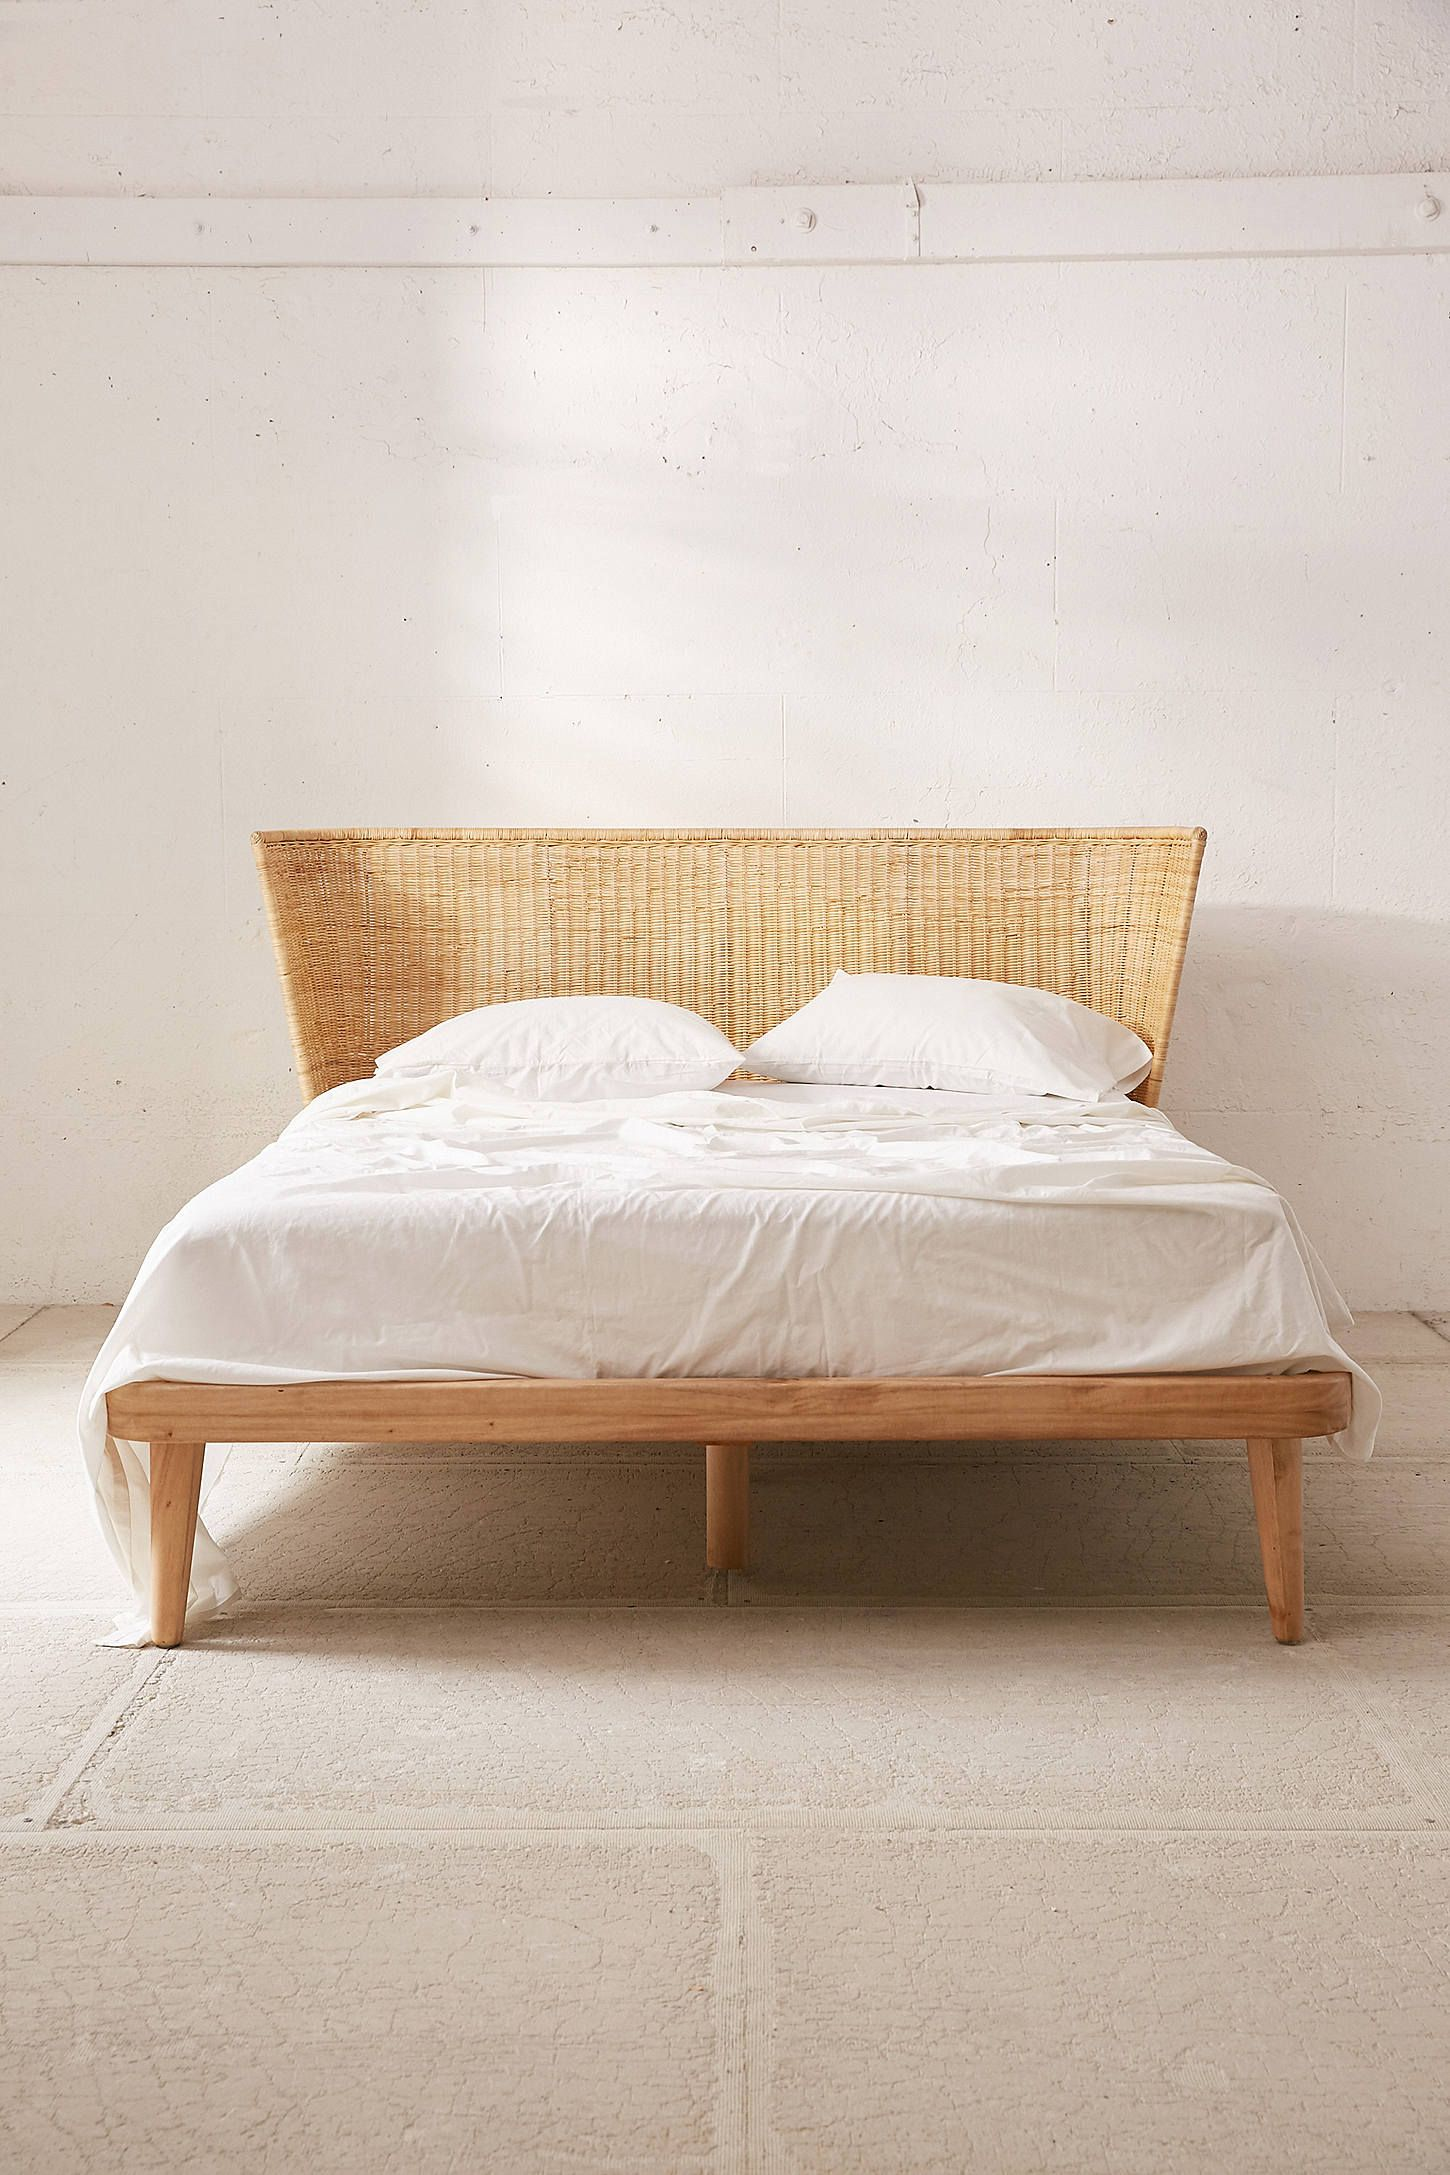 Shop Jens Woven Windsor Platform Bed At Urban Outfitters Today We